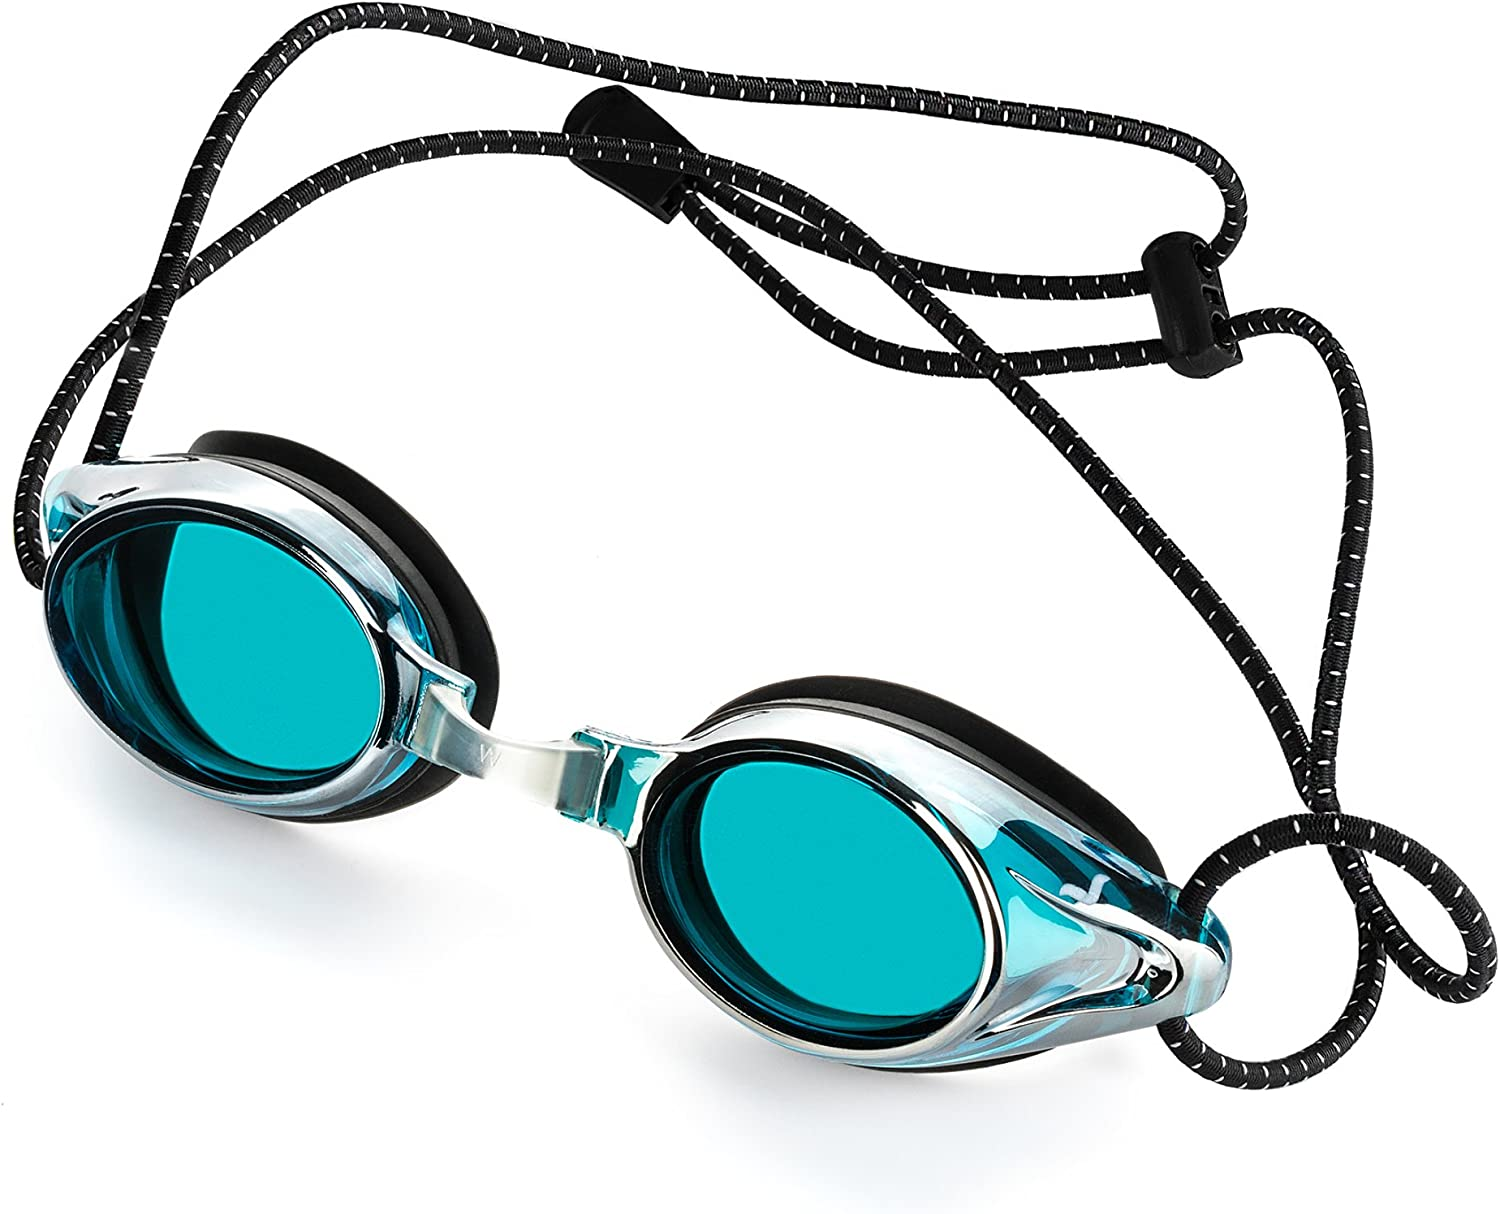 Anti-Fog Racing Swimming Goggles shipfree - by Blue Lens with Proswims Max 86% OFF Qu